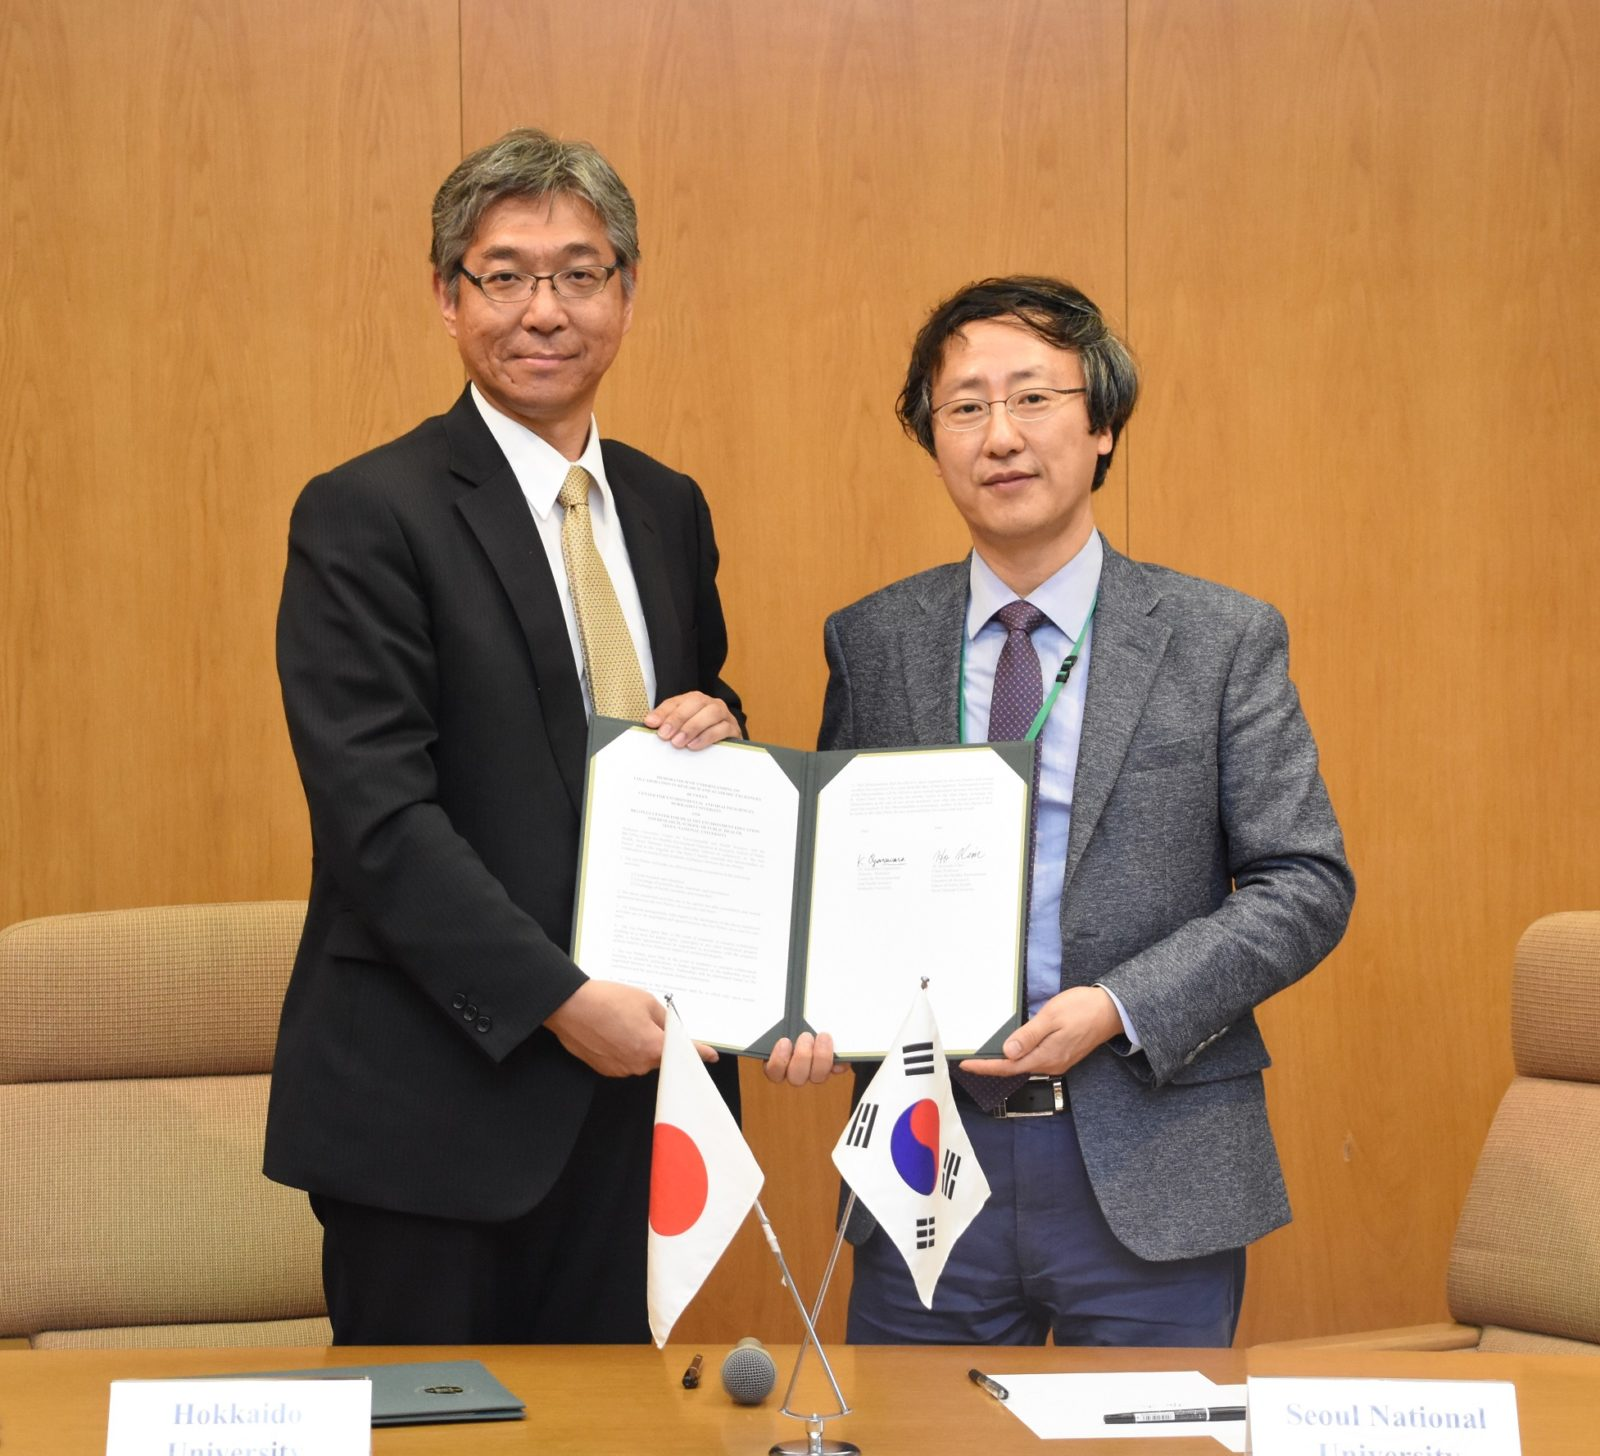 Prof. Kim, Dean of Graduate School of Public Health from SNU (right) and Prof. Ogasawara, Director of Center for Environmental and Health Sciences from HU (left) signed the MOU.